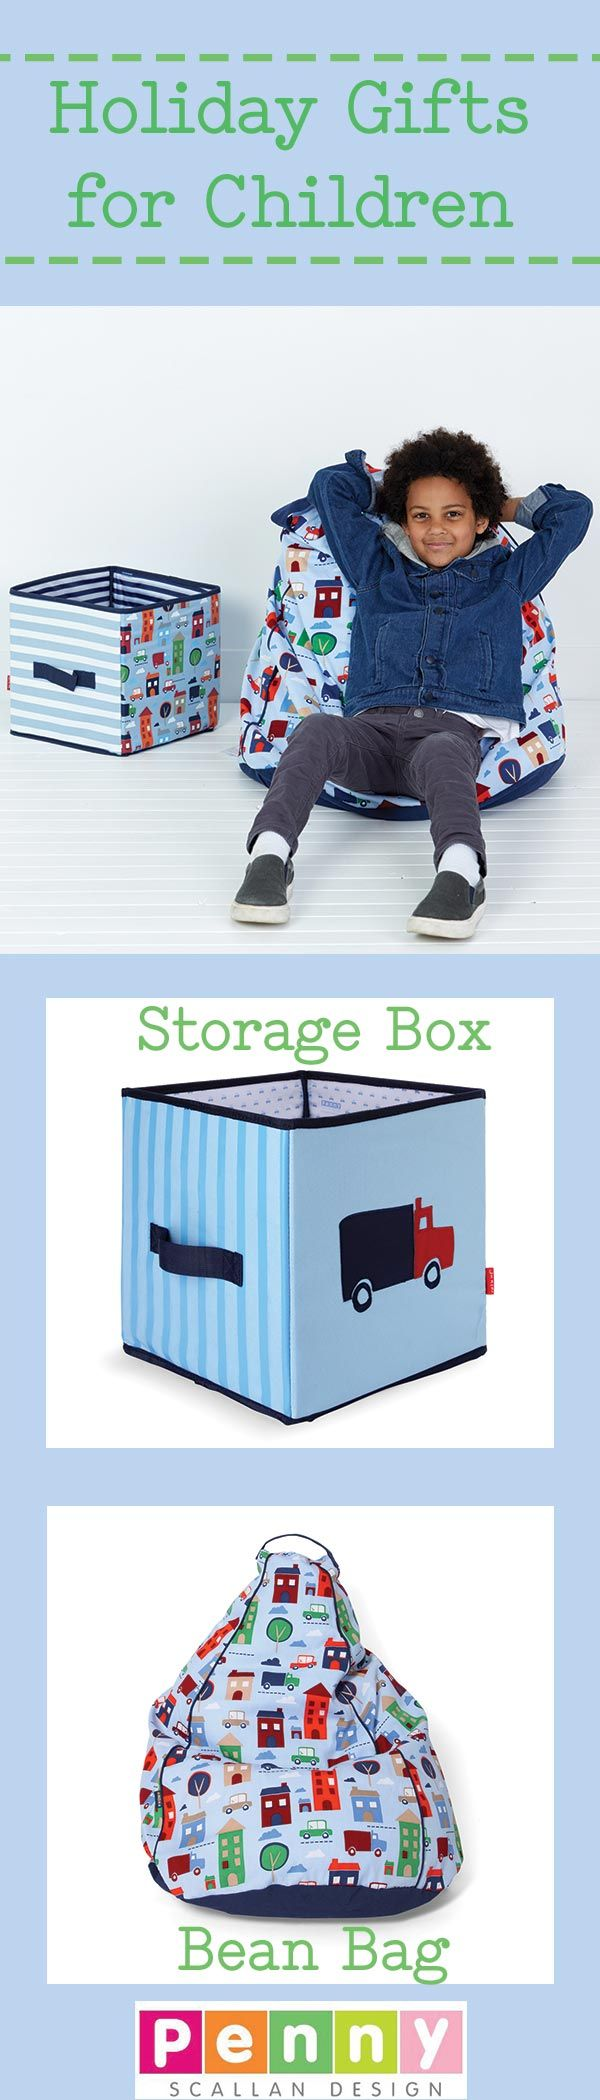 Get ready for the holiday season with all your presents. Buy children's gifts of Storage Box and Bean Bag online in stylish and unique designs.